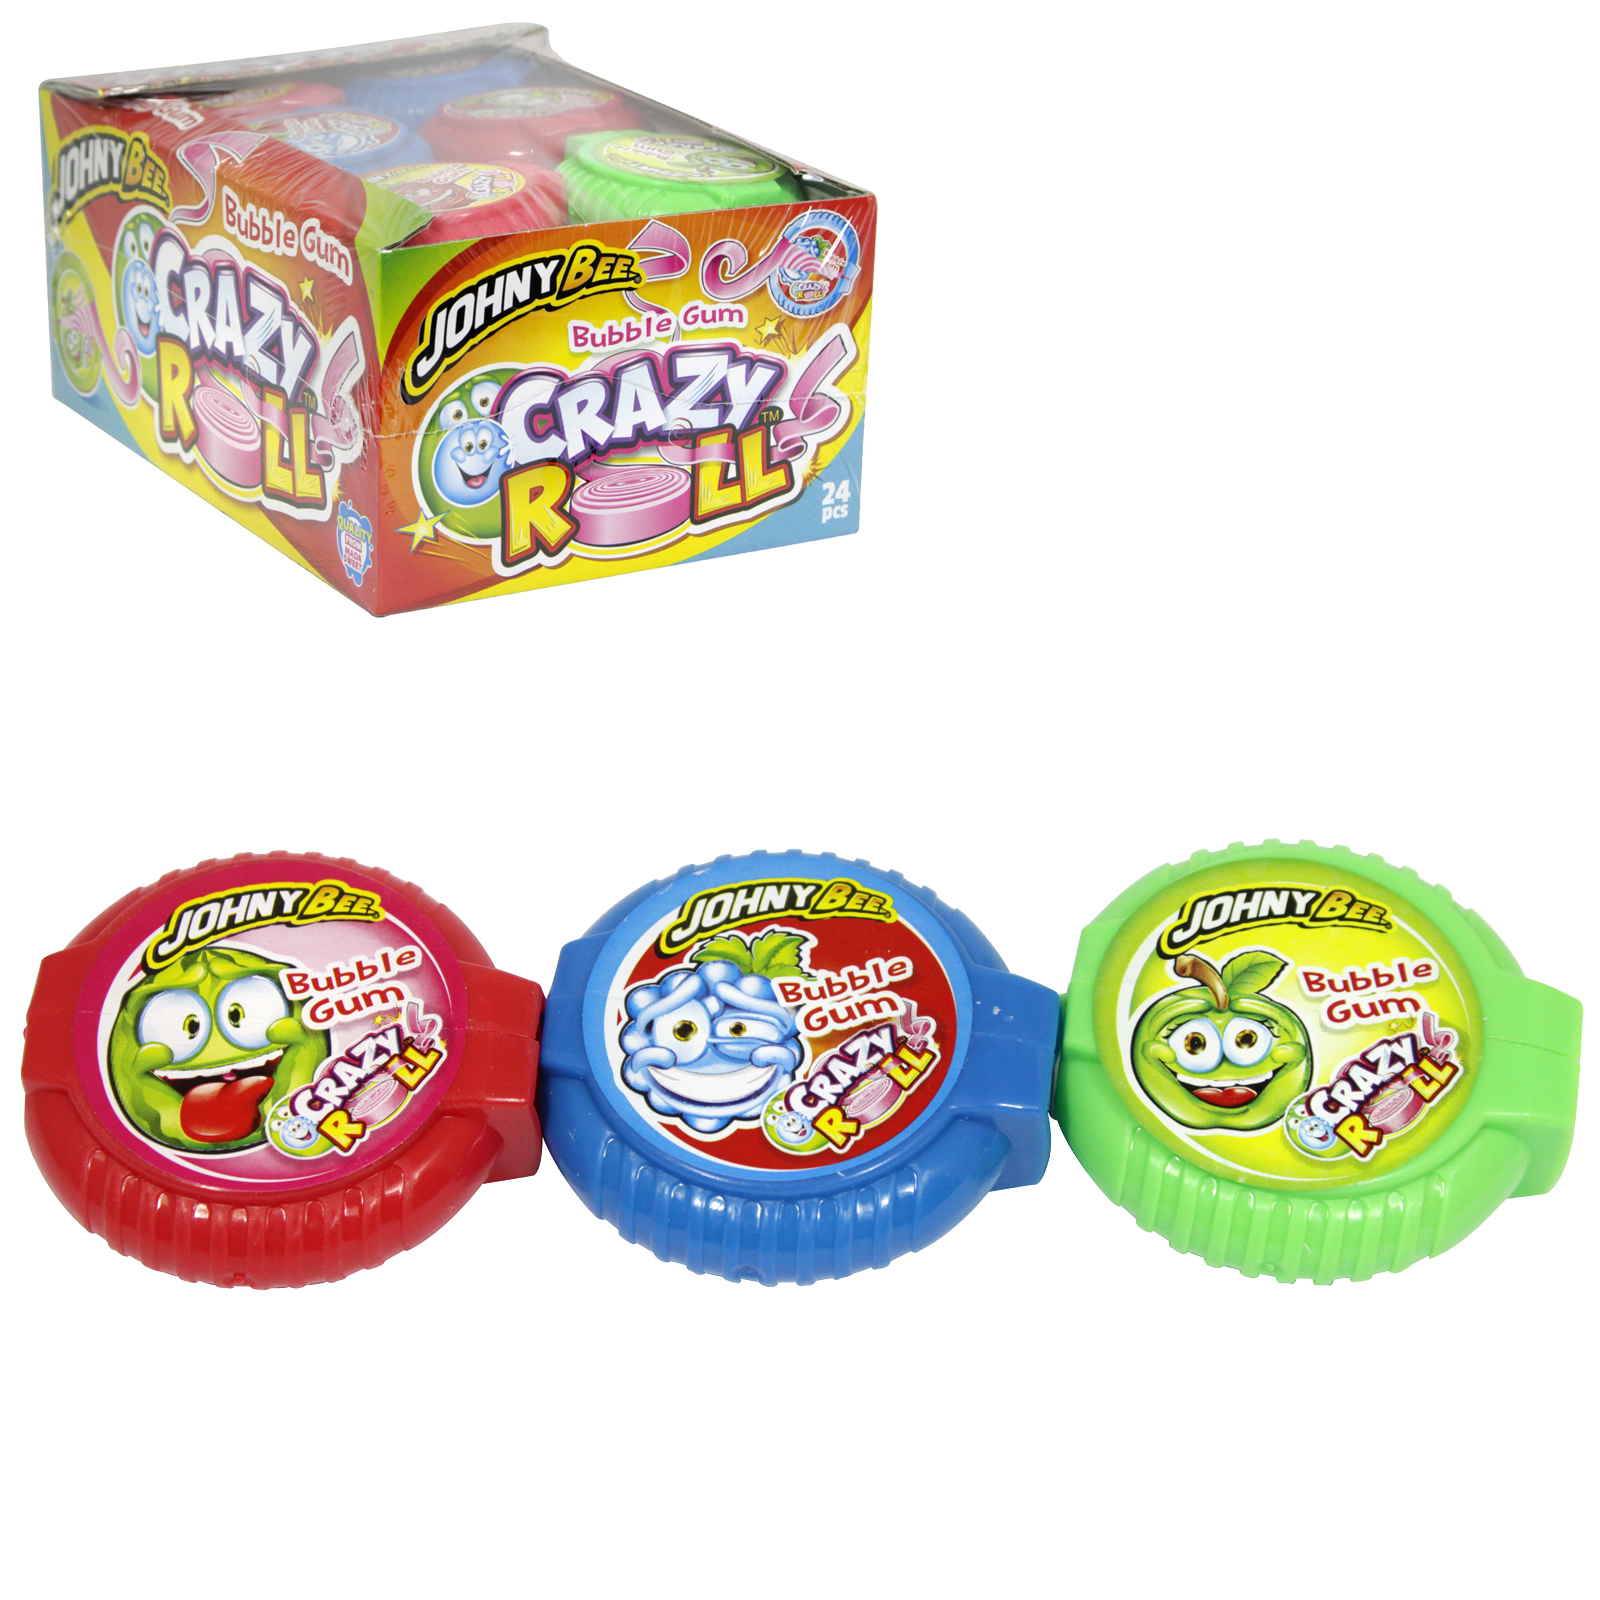 JOHNY BEE CRAZY ROLL BUBBLE GUM ASSORTED X24